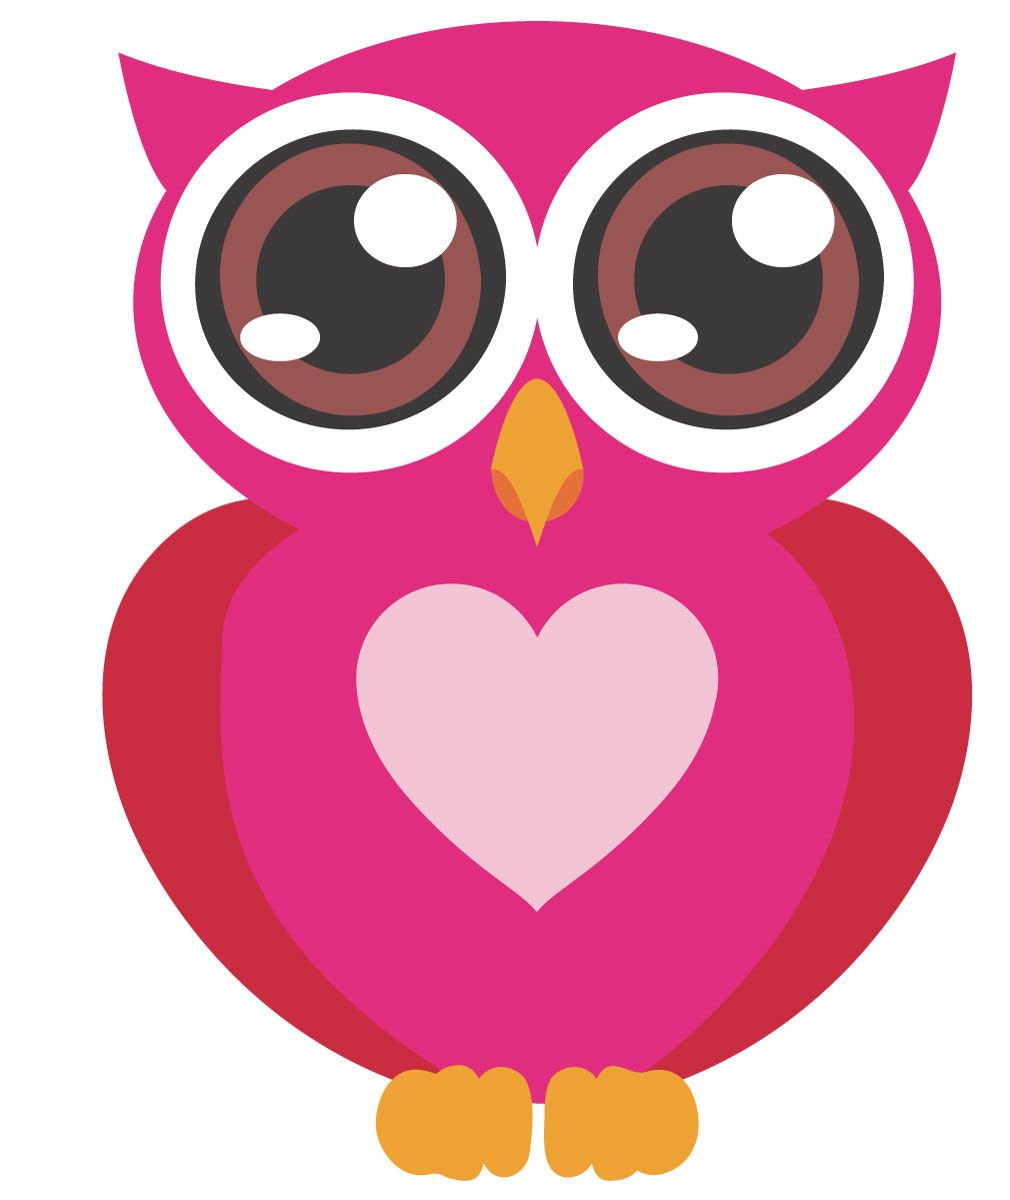 pink owl with big eyes wall stickers totally movable pink owl rh pinterest ie pink and grey owl clip art pink and purple owl clip art